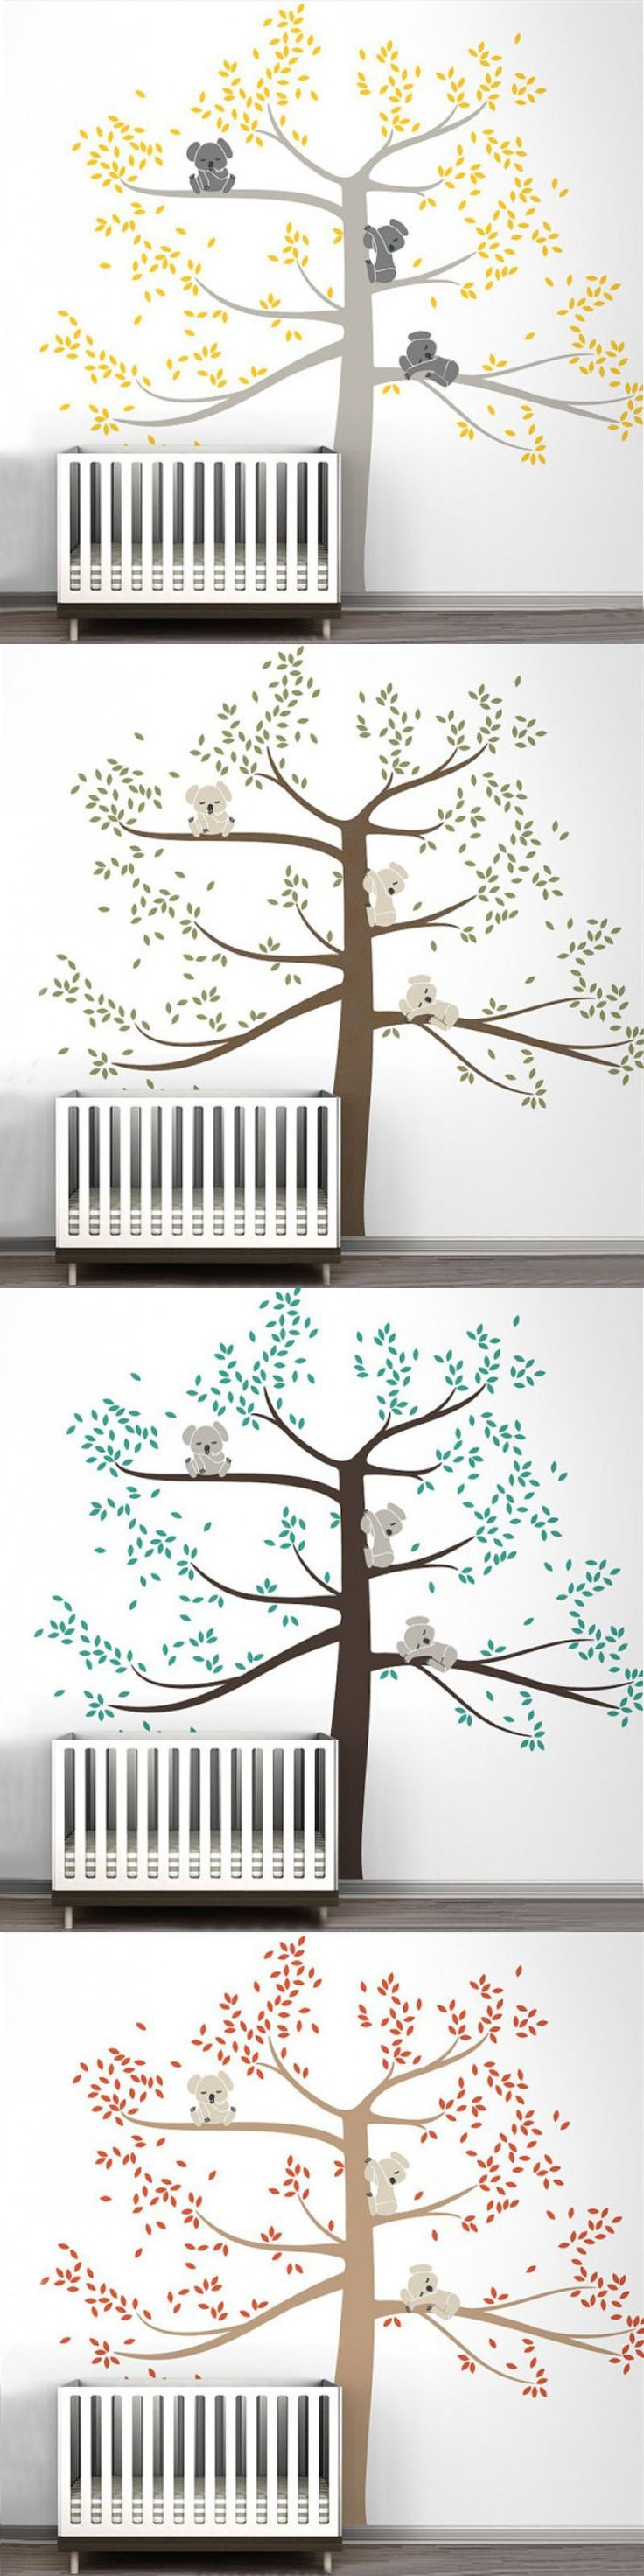 best 10 baby wall stickers ideas on pinterest baby wall decals new spring koala tree vinyl wall decal removable wall sticker tree nursery vinyls baby room decor wall stickers home decoration